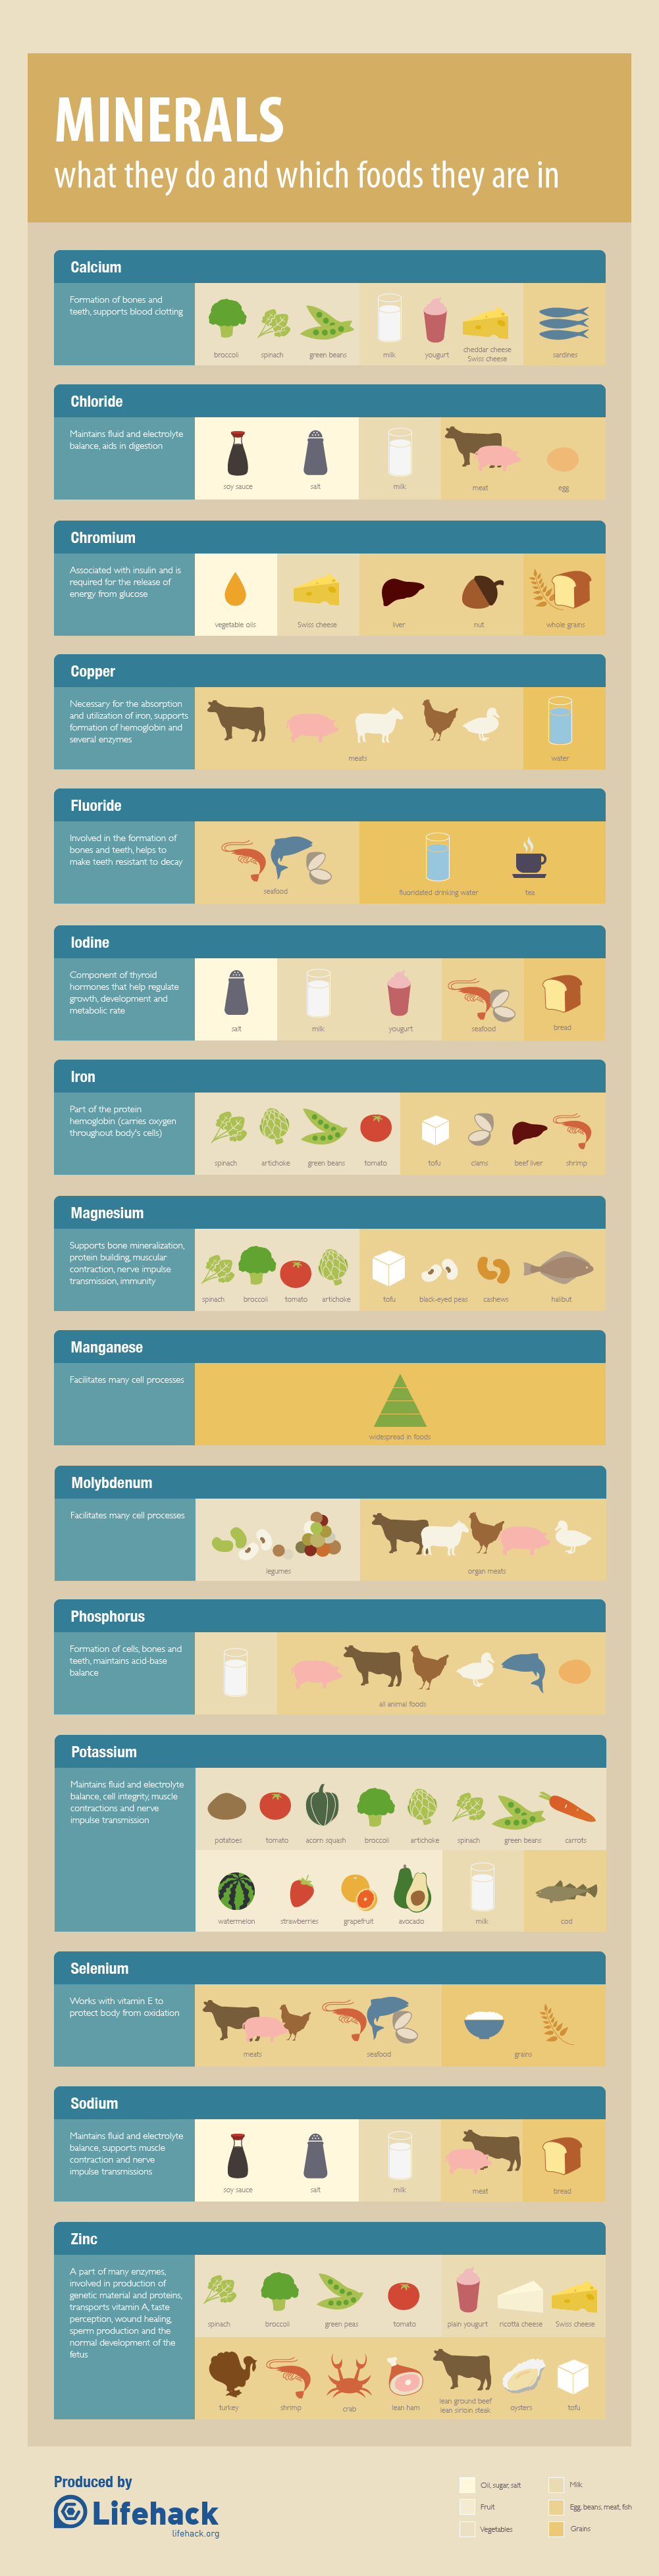 nutrition-minerals-cheat-sheet--food-sources_50cadd535f100